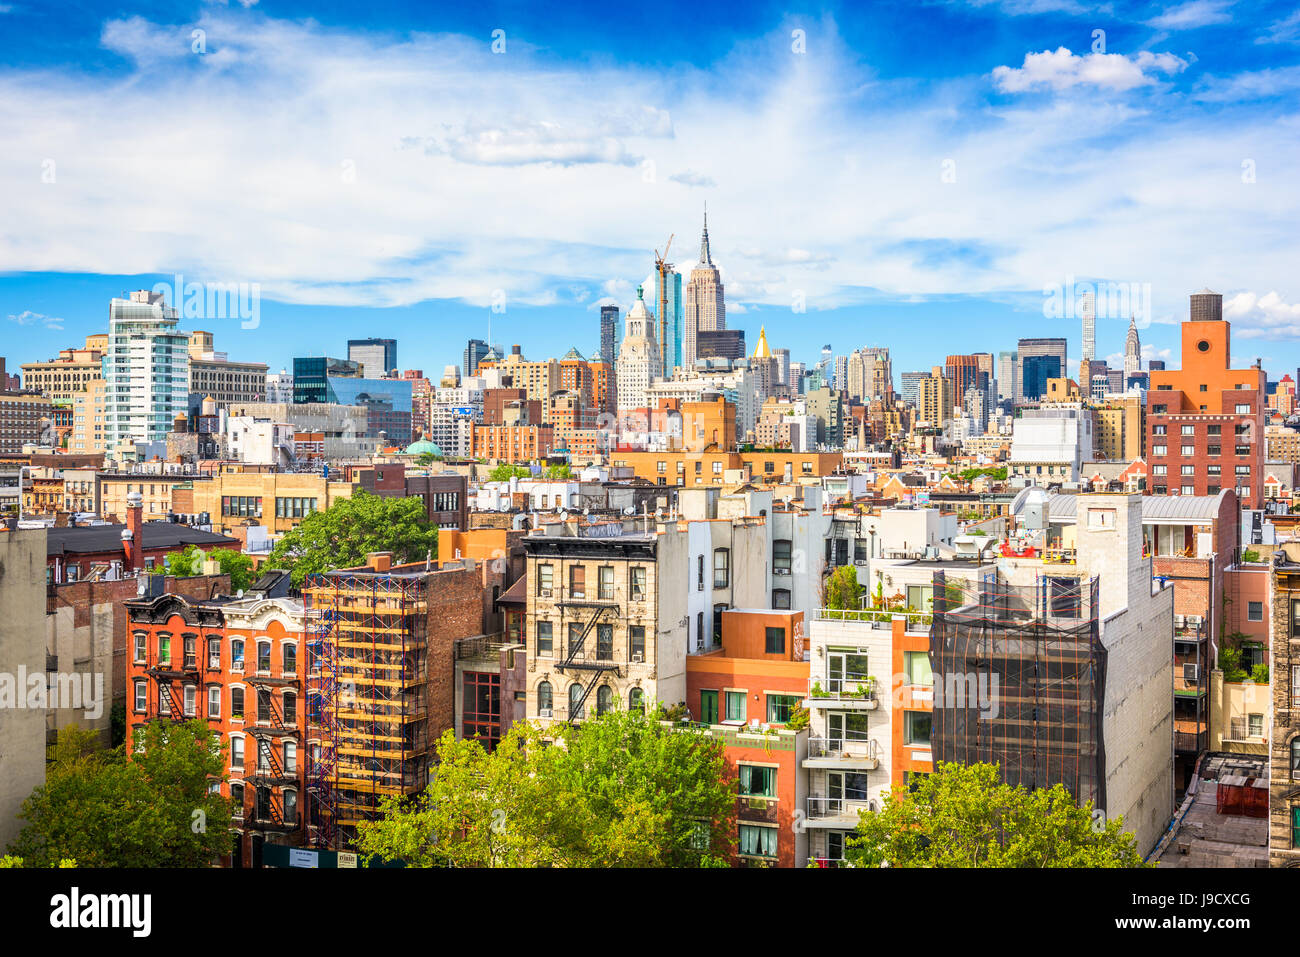 New York City view of Lower East side towards Midtown Manhattan. - Stock Image